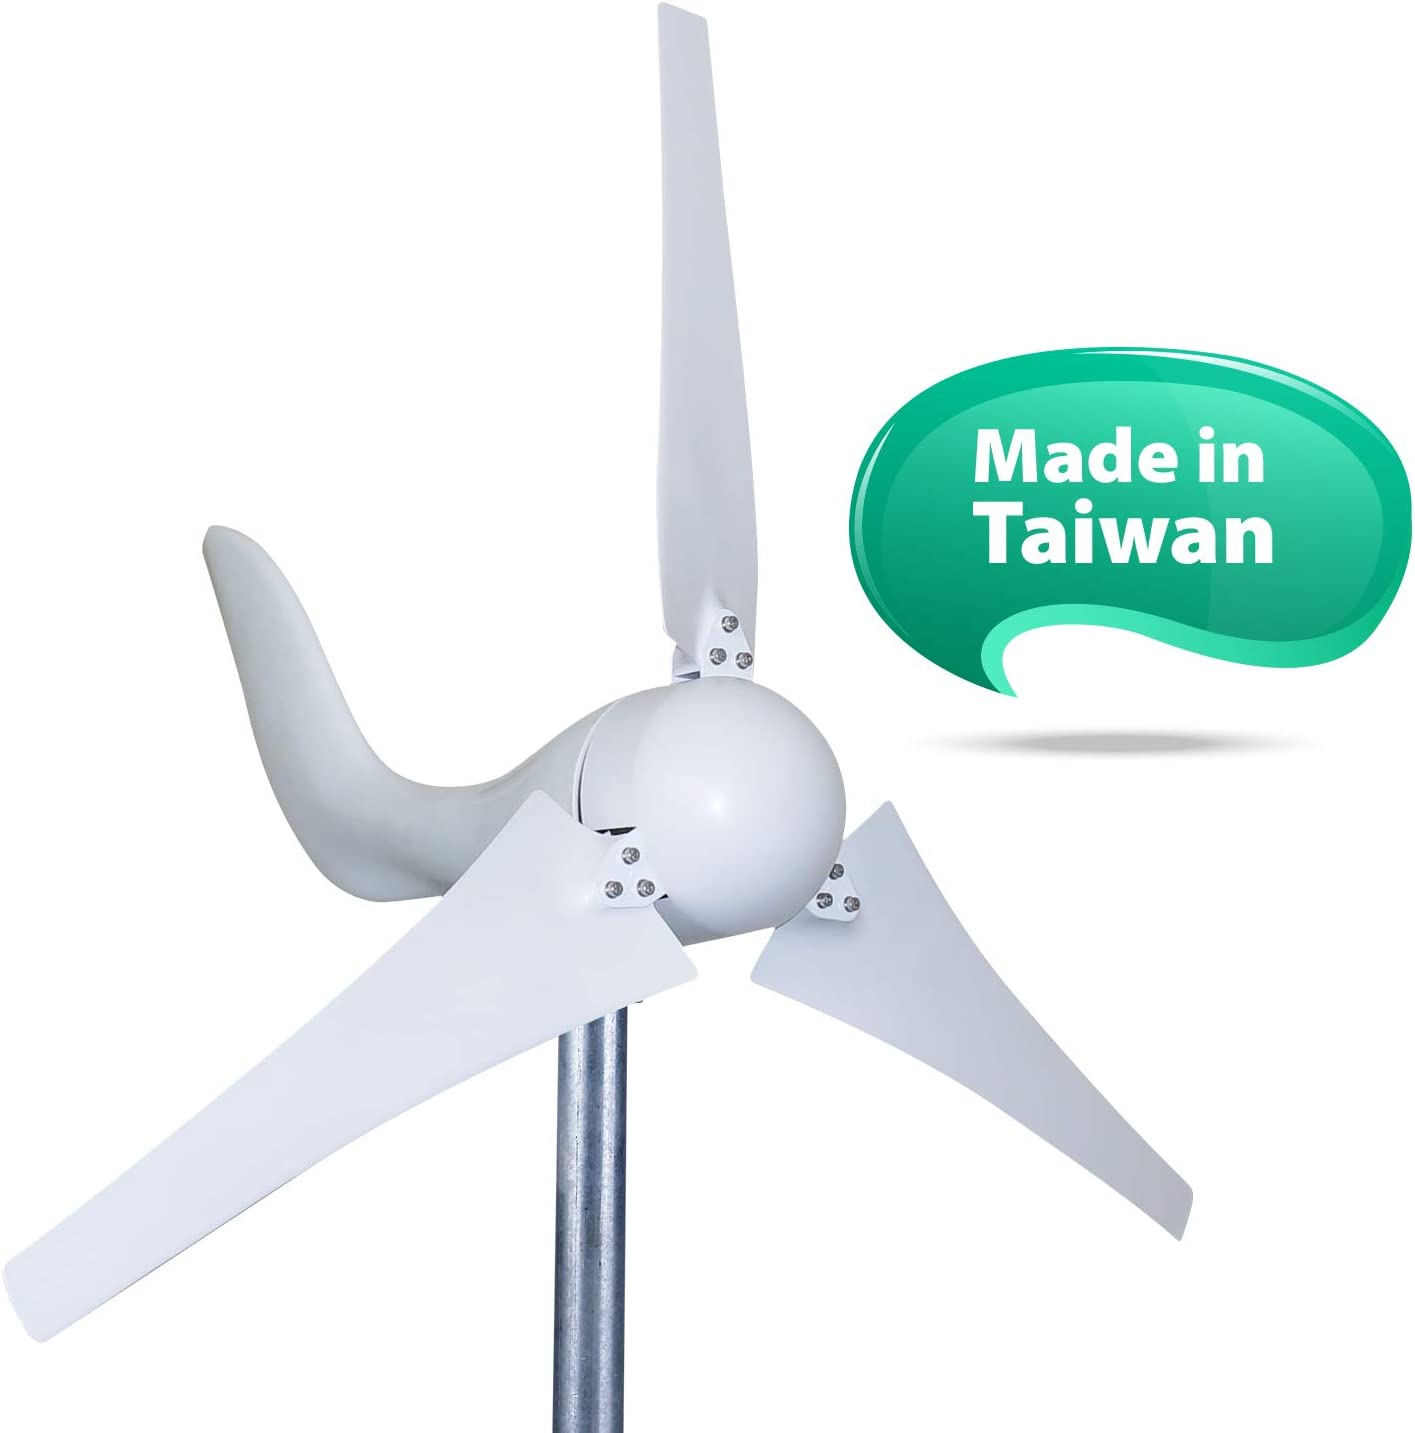 24V 600W Wind Turbo Generator Wind Turbine 5 Blade Low Wind Speed Starting Wind Turbines with Charge Controller for Wind Solar Hybrid System for Home//Camping